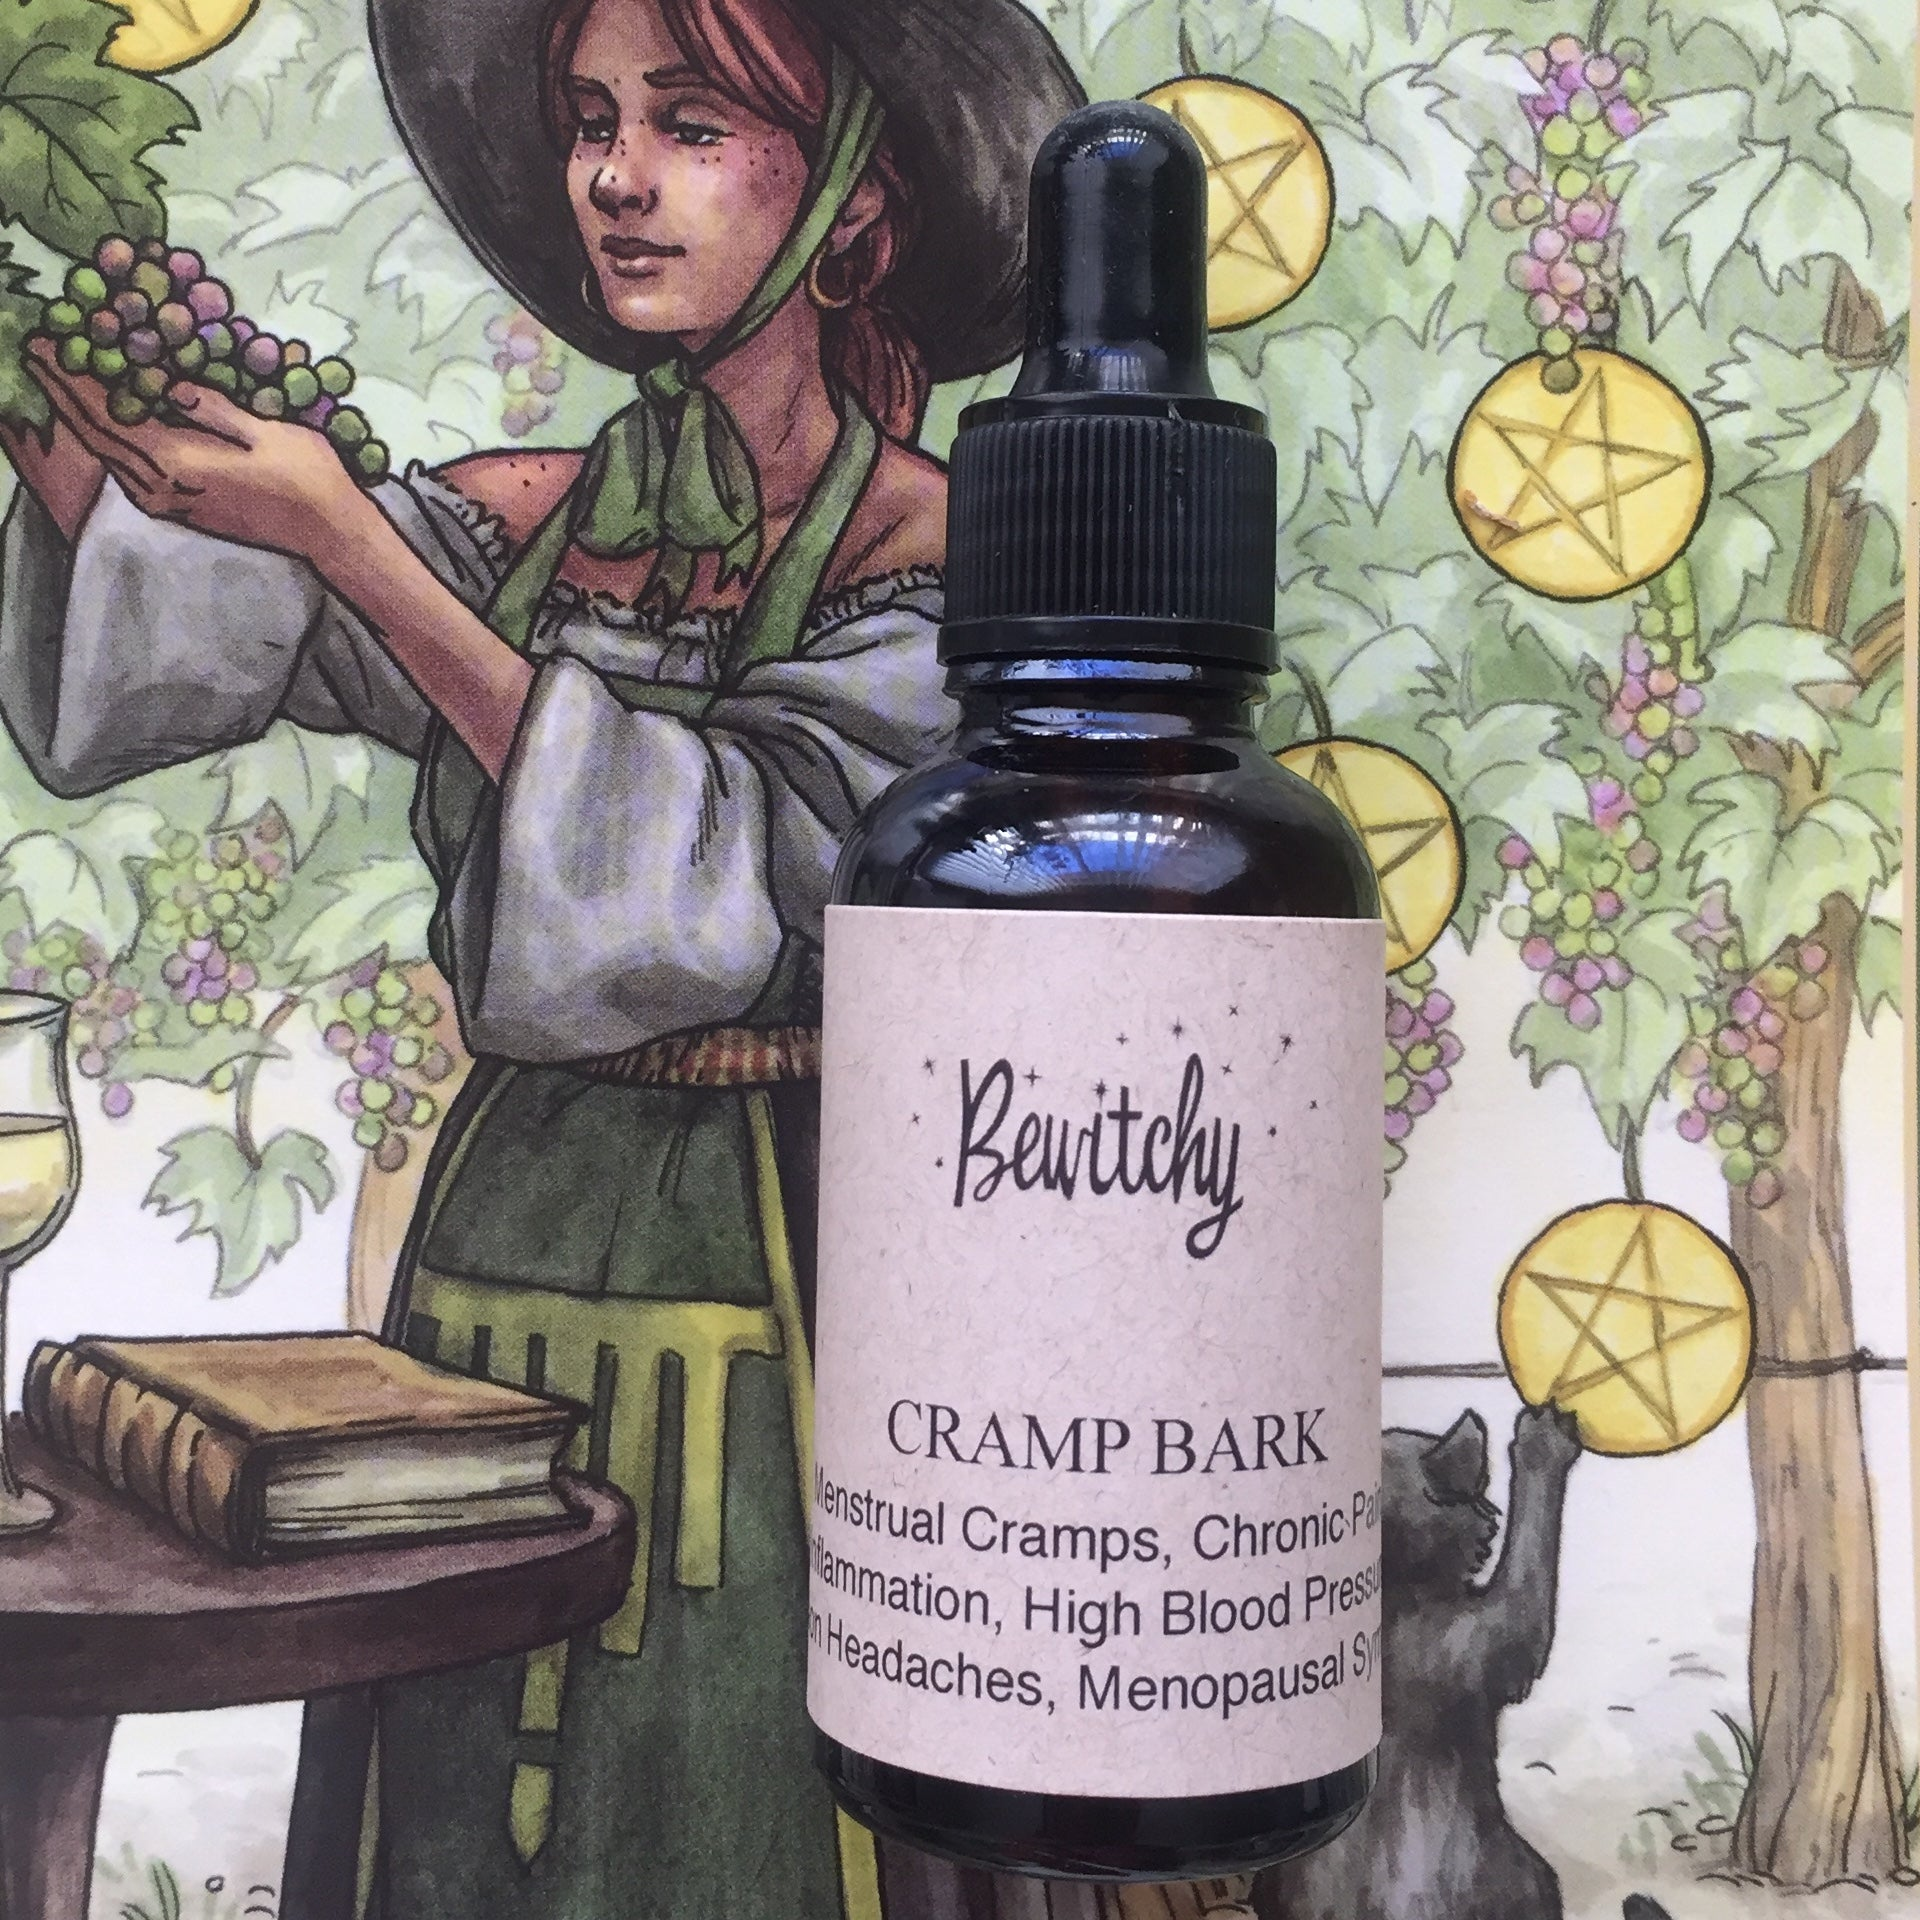 Cramp Bark herbal tincture